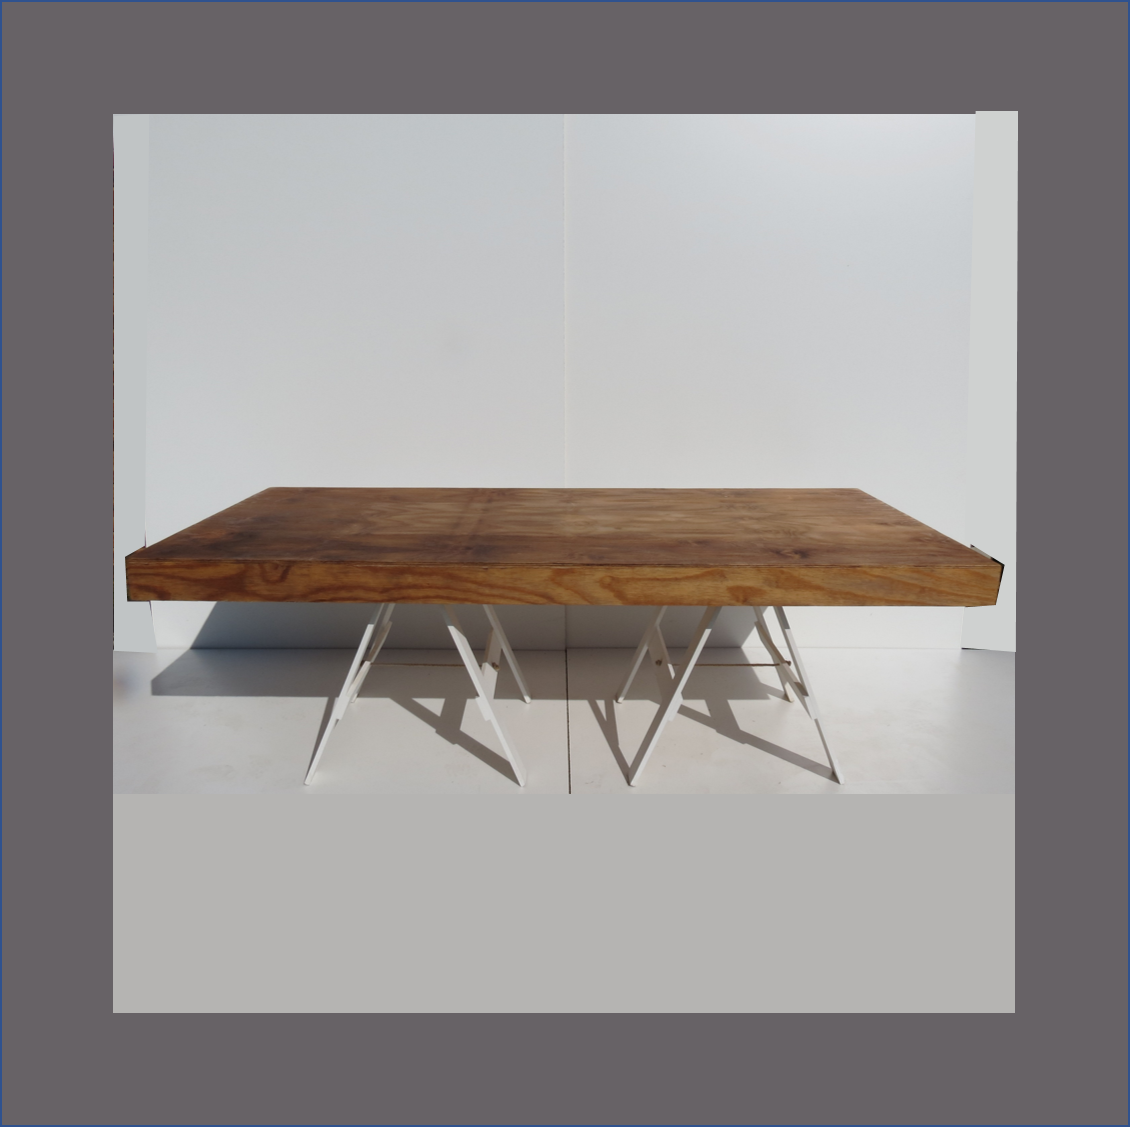 stained-pine-ply-dining-table